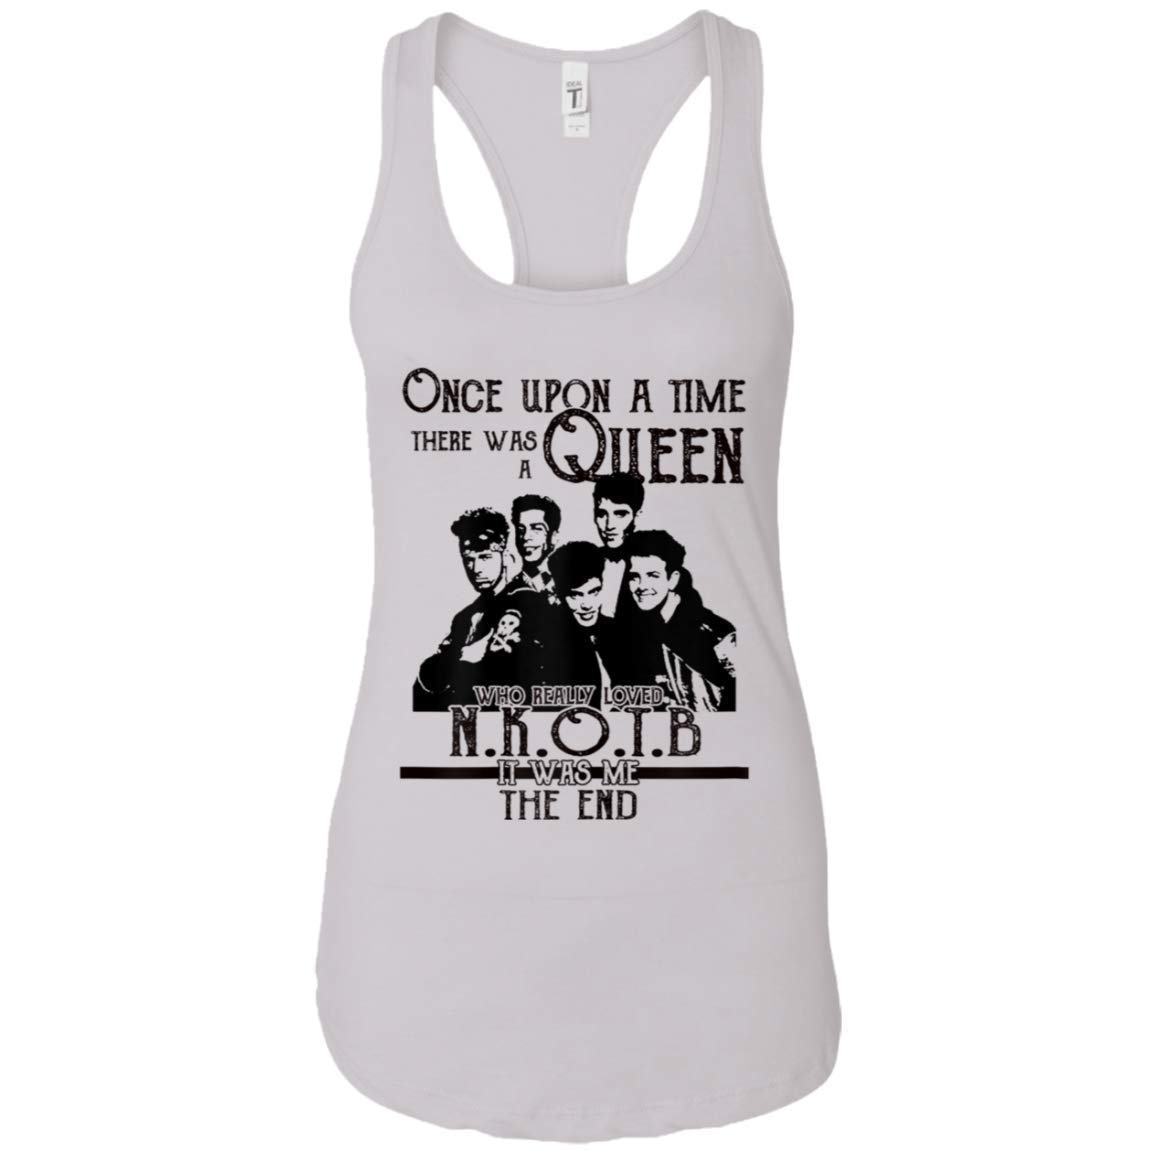 Vintage New On Block Once Upon A Time Racerback For 2175 Shirts